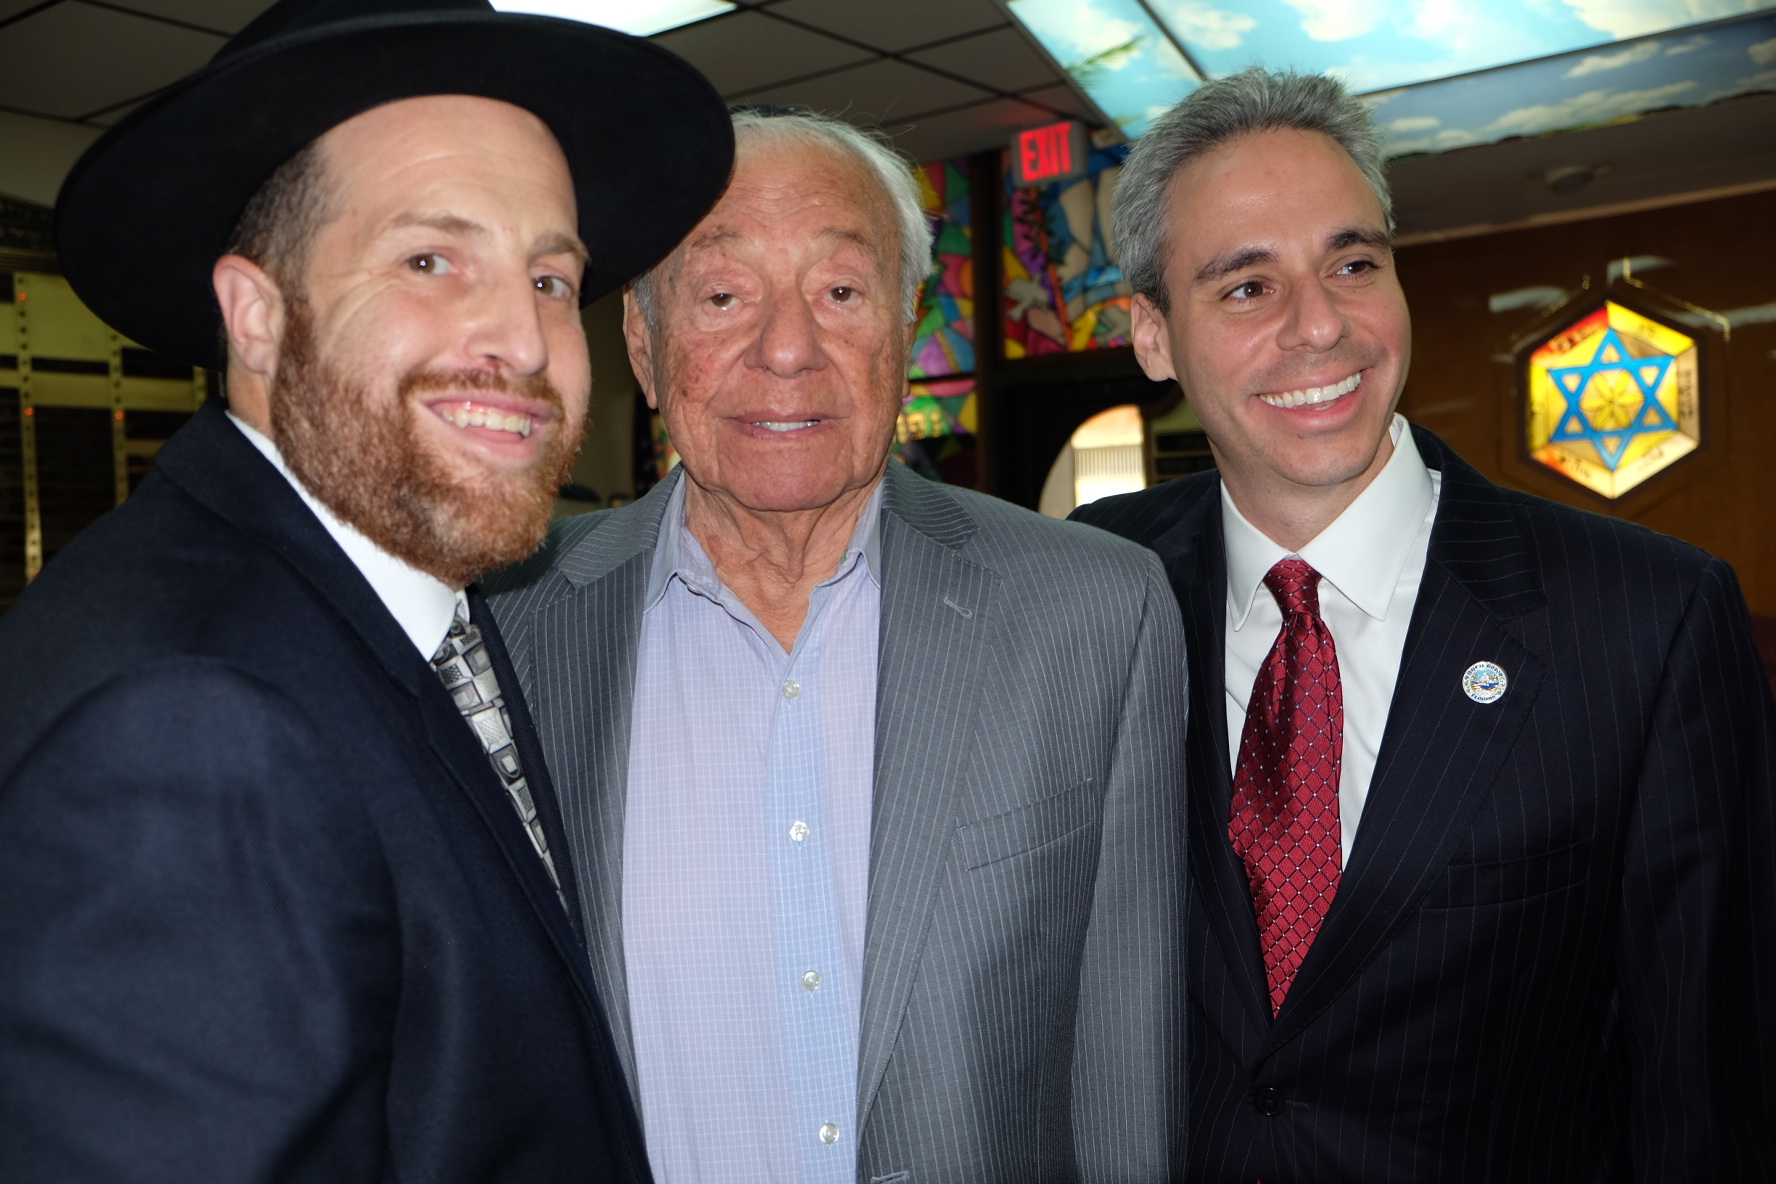 Rabbi Haber smile